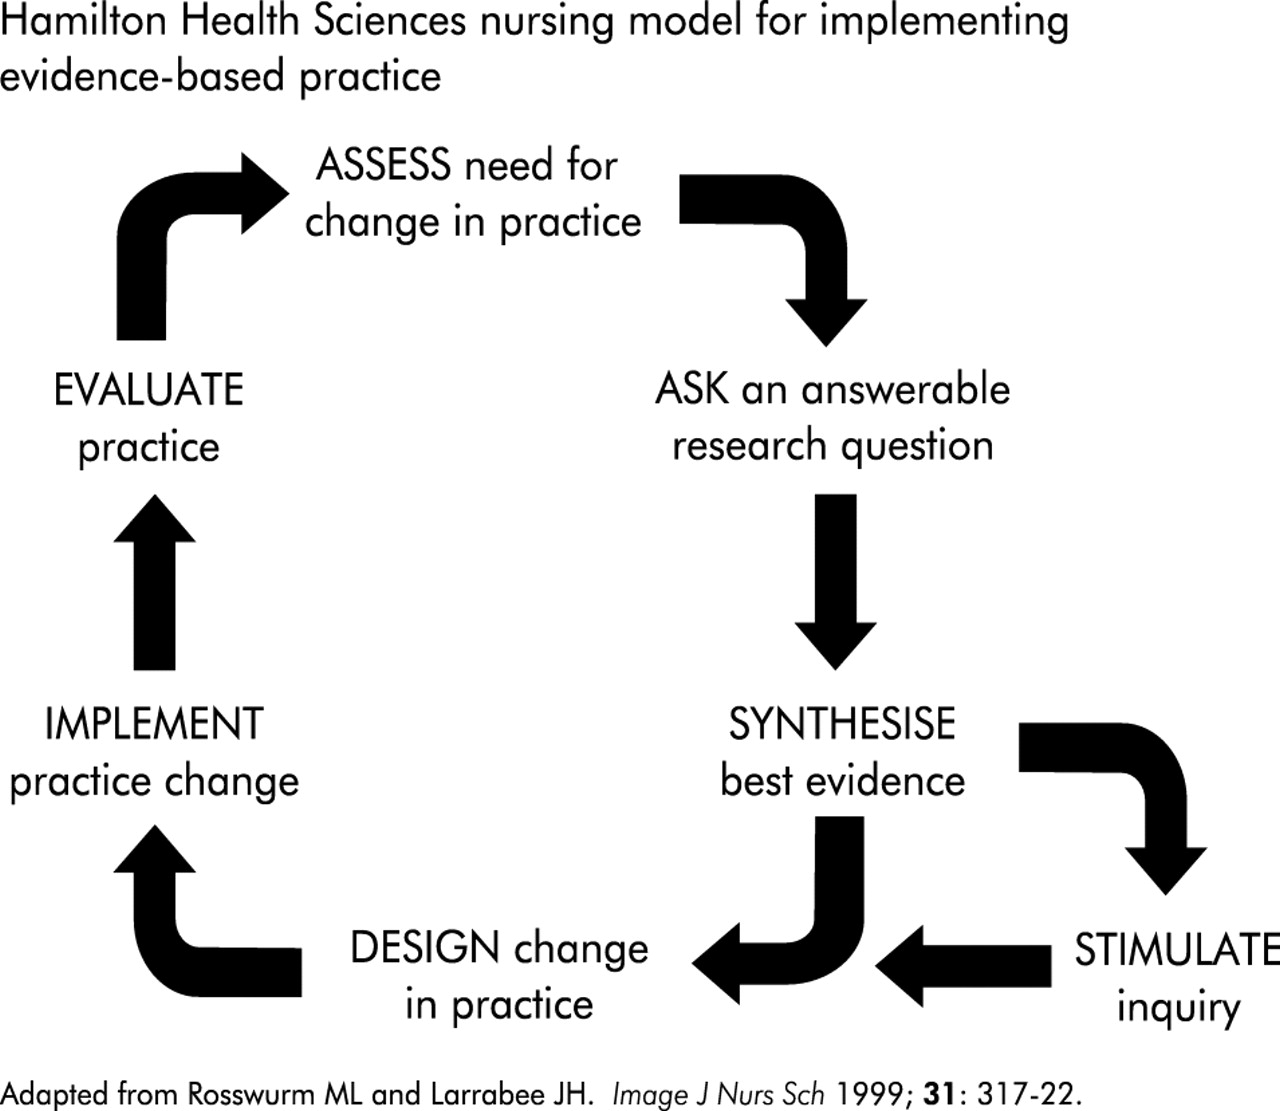 rosswurm and larrabee model for change Rosswurm and larrabee model, data - the most effective treatment for an asthma exacerbation.